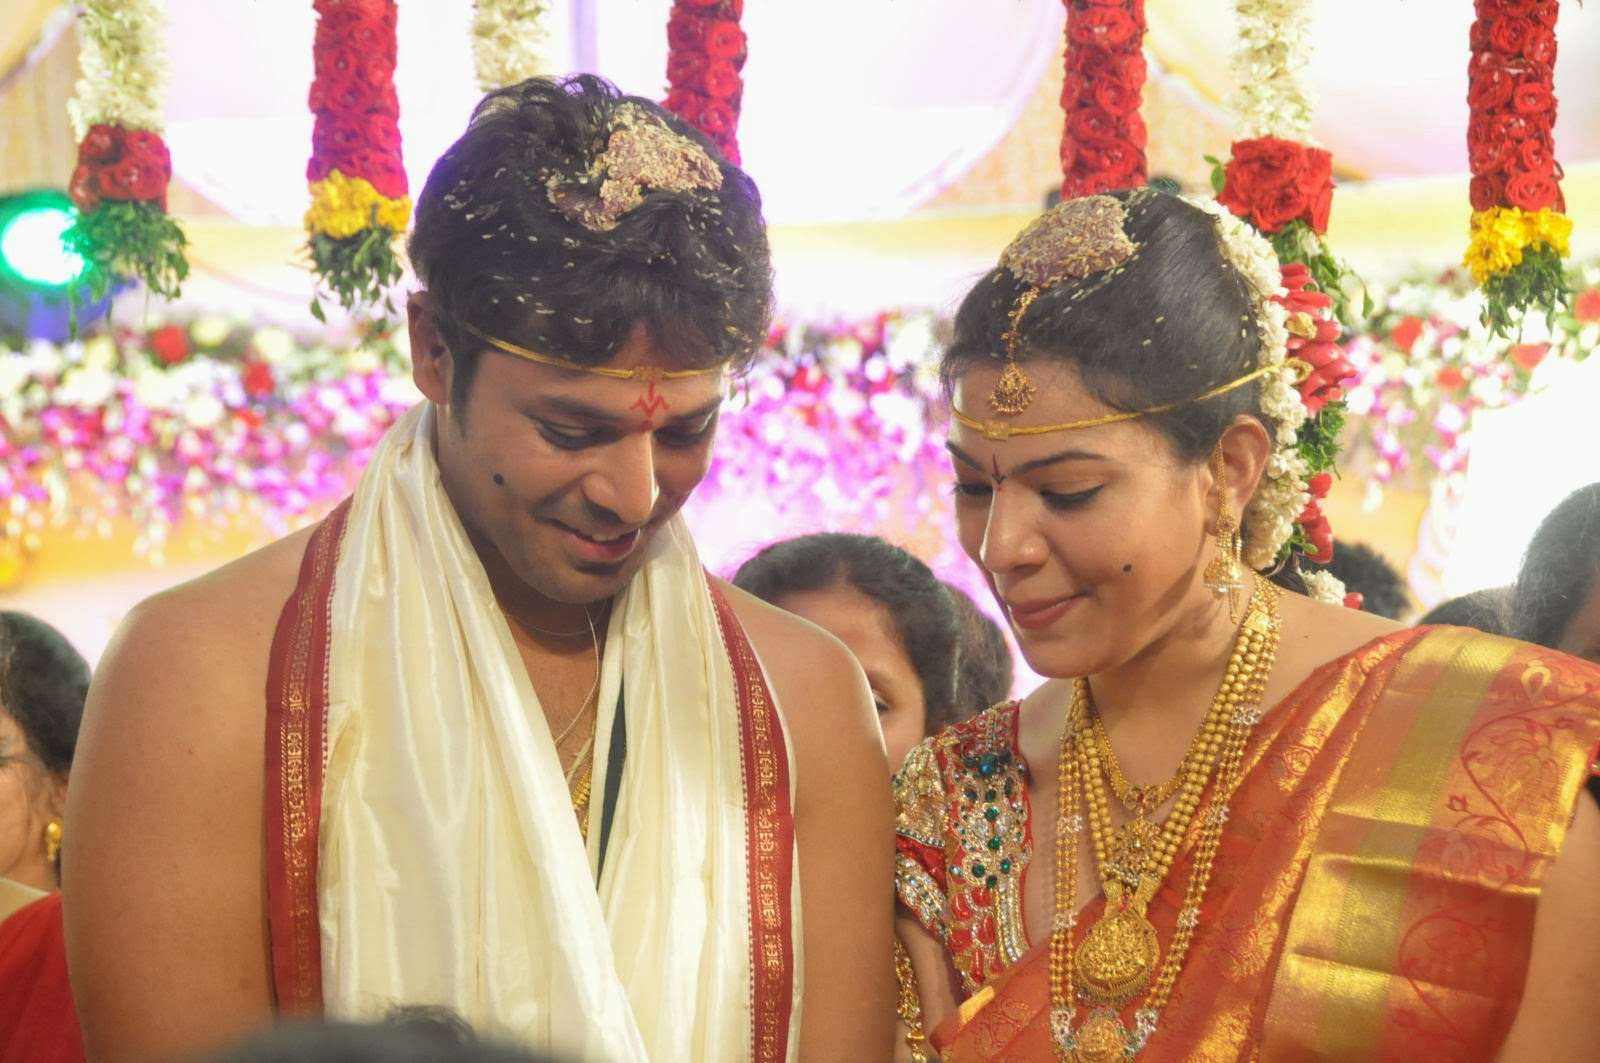 Cinema doctor: May 2012 Aadith d vikram marriage photos